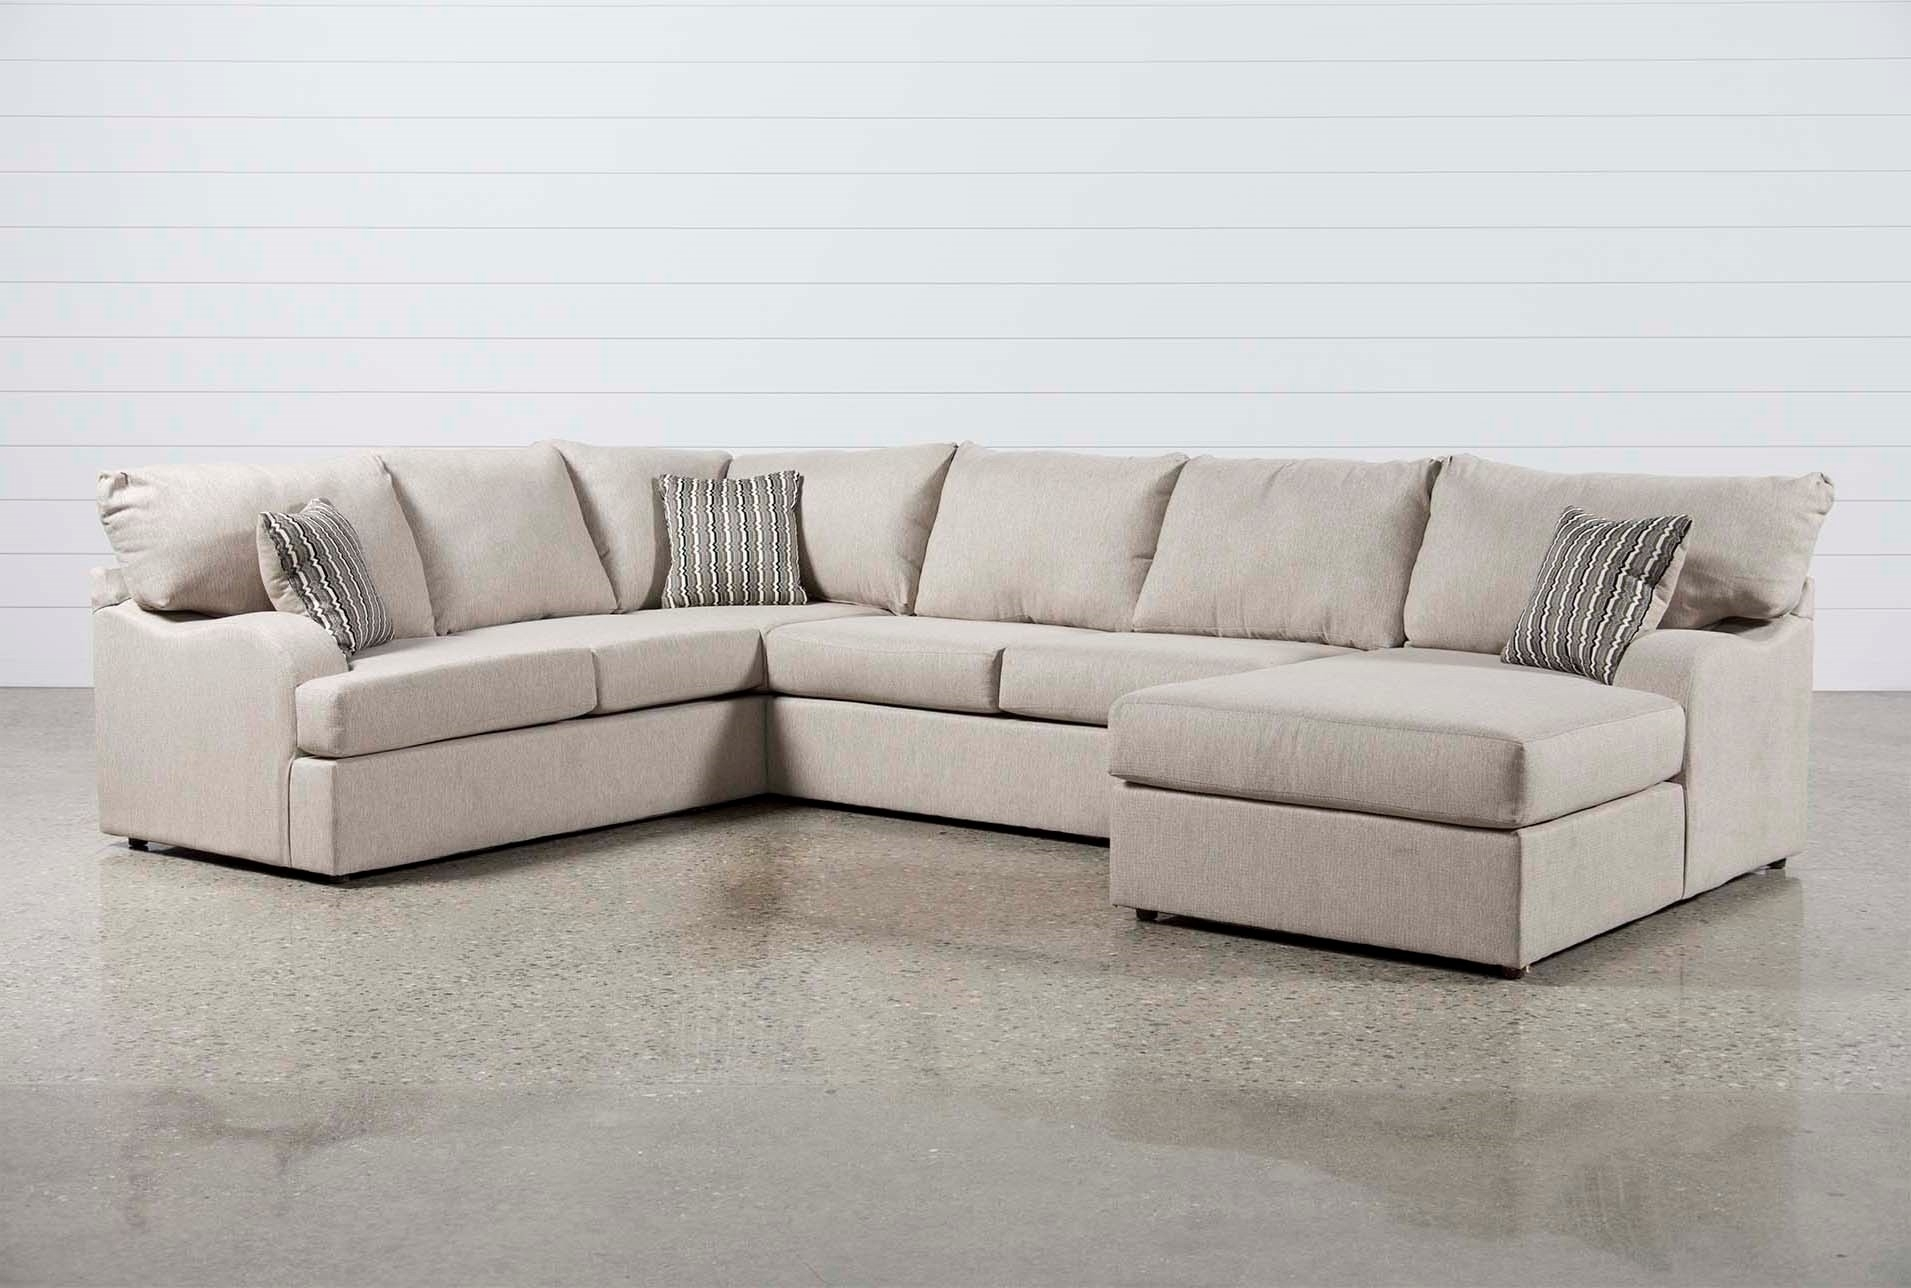 Raf Sectional Turdur 3 Piece W Loveseat Living Spaces 223462 0 Jpg Throughout Turdur 3 Piece Sectionals With Laf Loveseat (View 8 of 25)